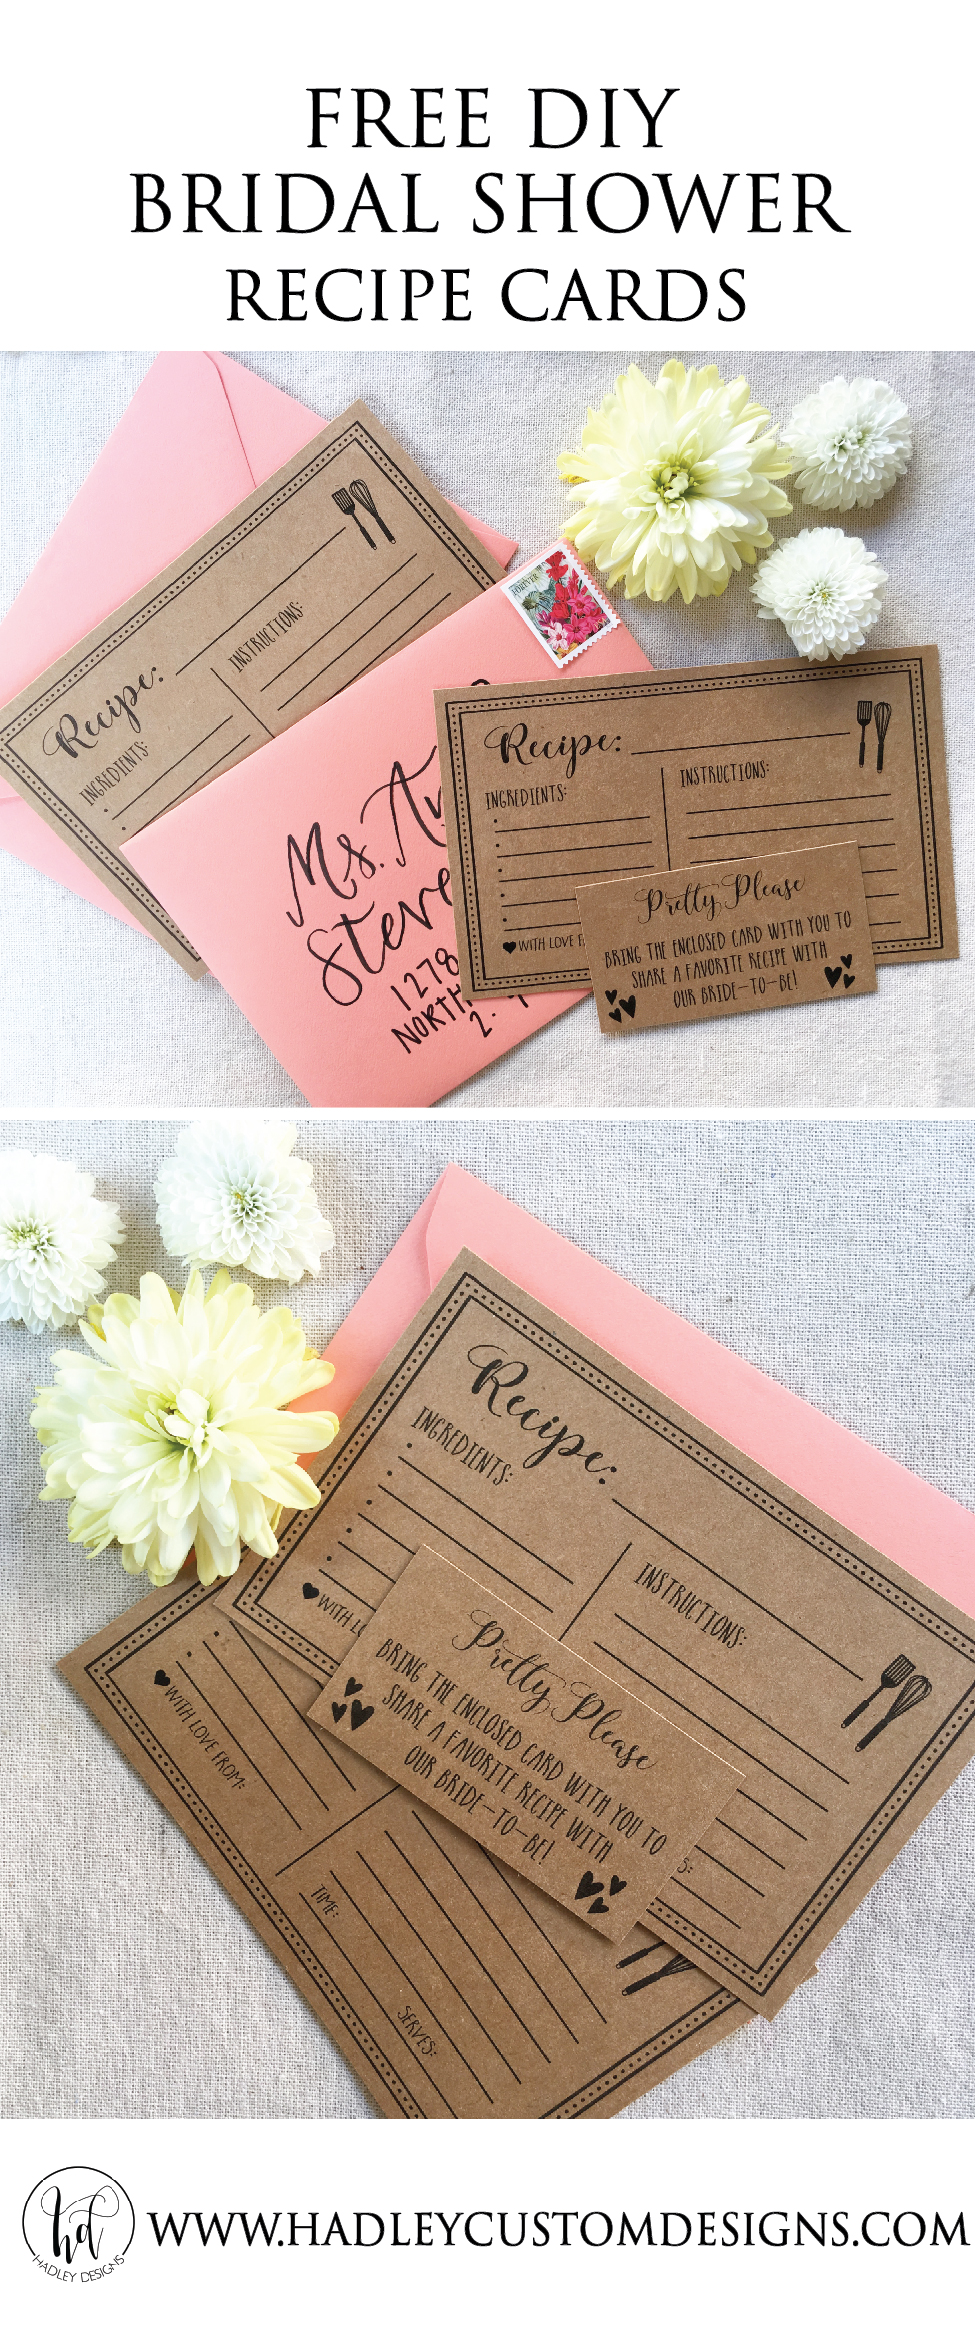 for an added rustic touch print this bw file on kraft paper